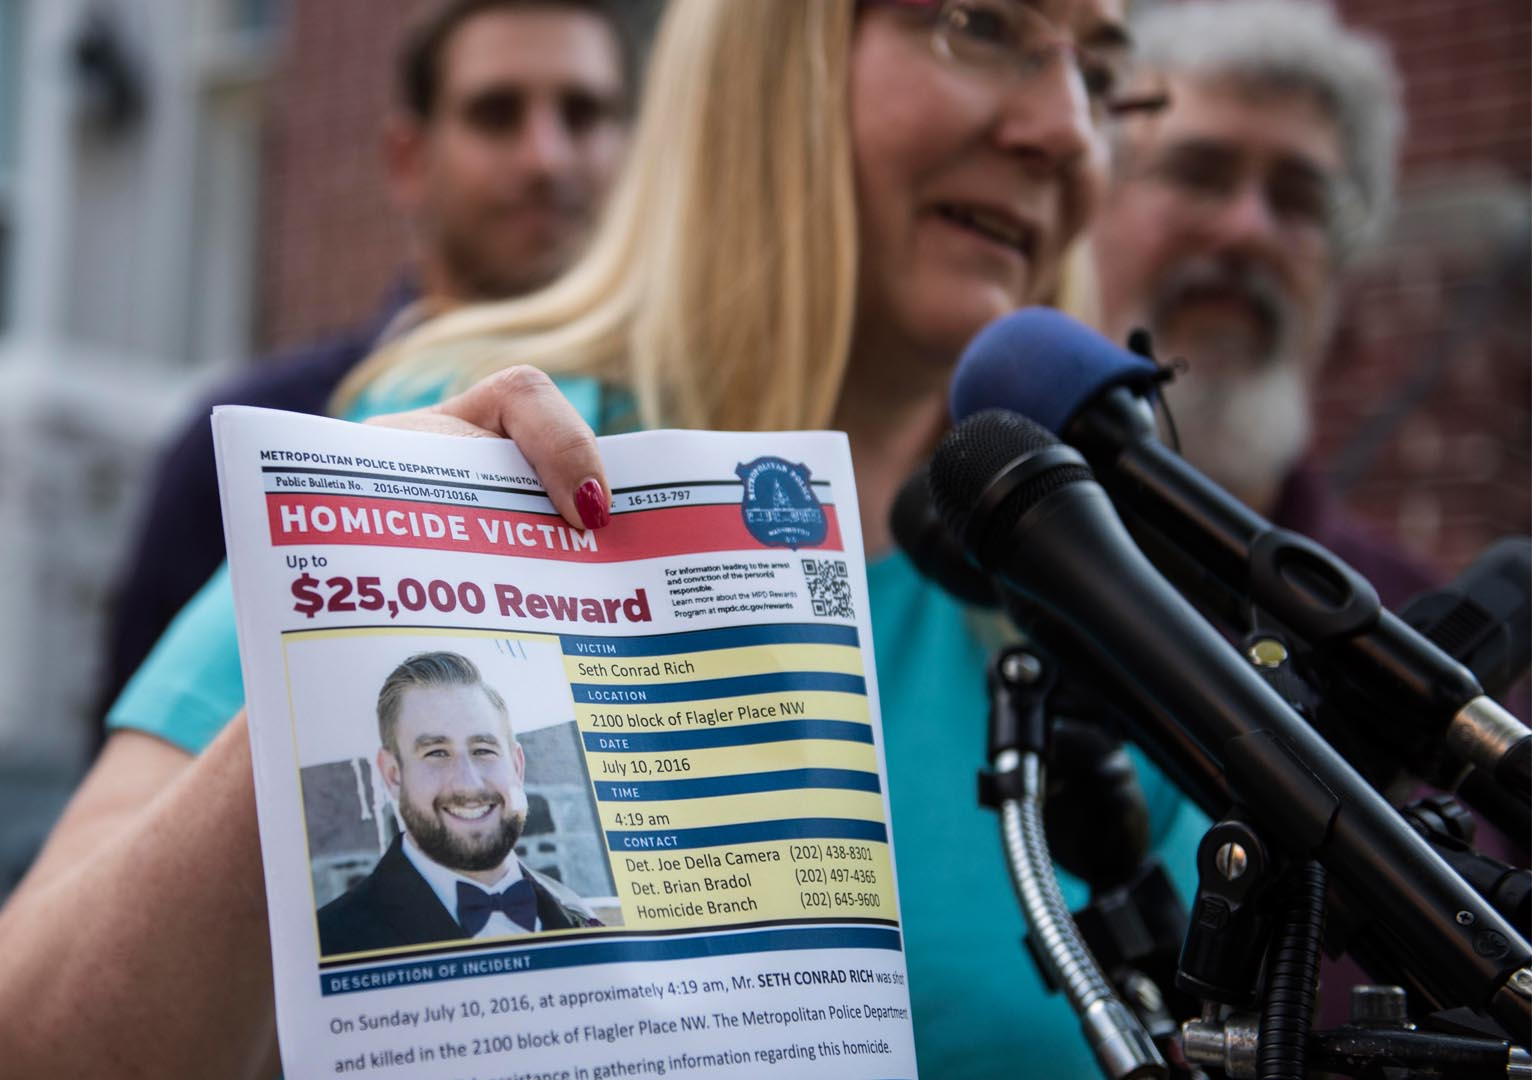 Family of slain DNC staffer demands retractions